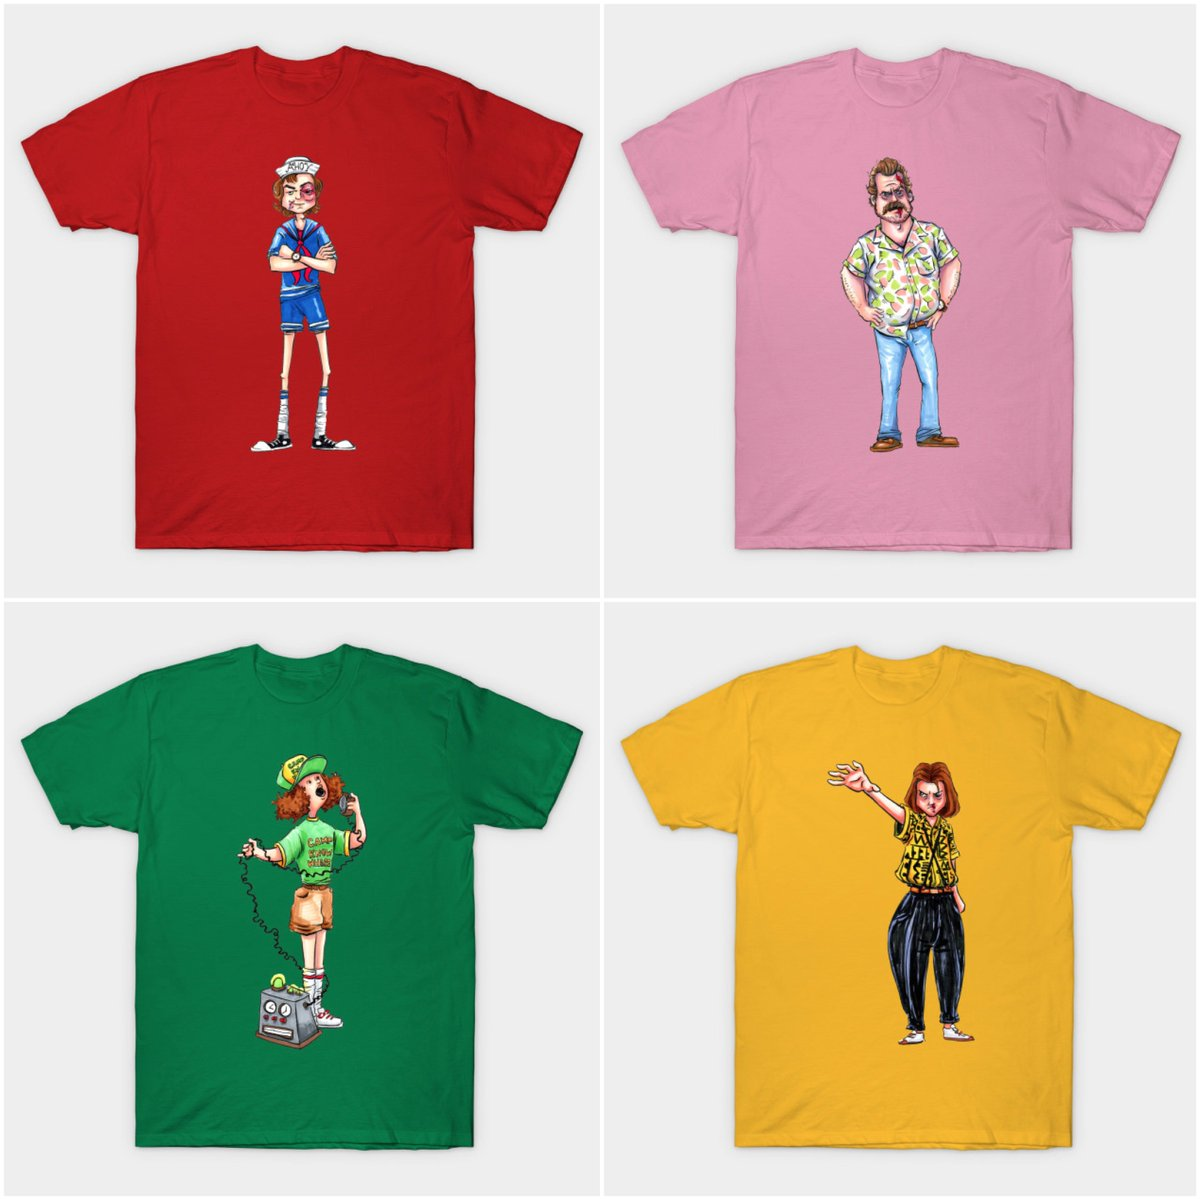 Tees available now at @TeePublic and on sale for just $13 for my little #StrangerThings art series focused on their amazing 80's outfits! Check them out here http://ow.ly/1vgU50vPcWo  #StrangerThingsArt #StrangerThings3 #80s #ILoveThe80s #ArtSale #Tshirts #Geek #Nerd #Scifi